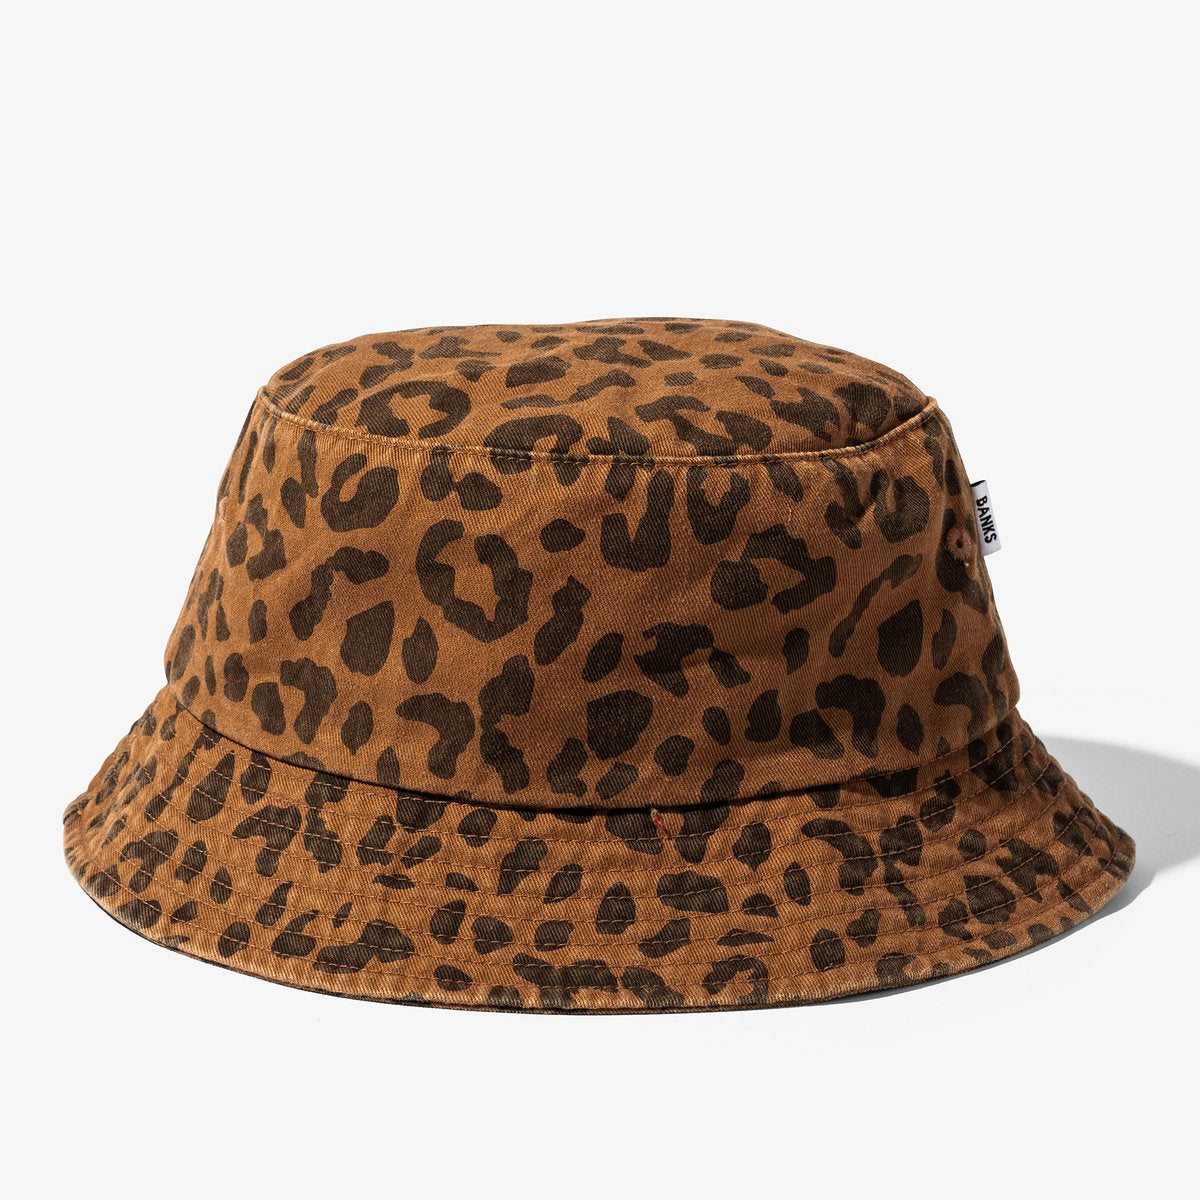 BANKS JOURNAL WILDER BUCKET HAT LEOPARD - 8586